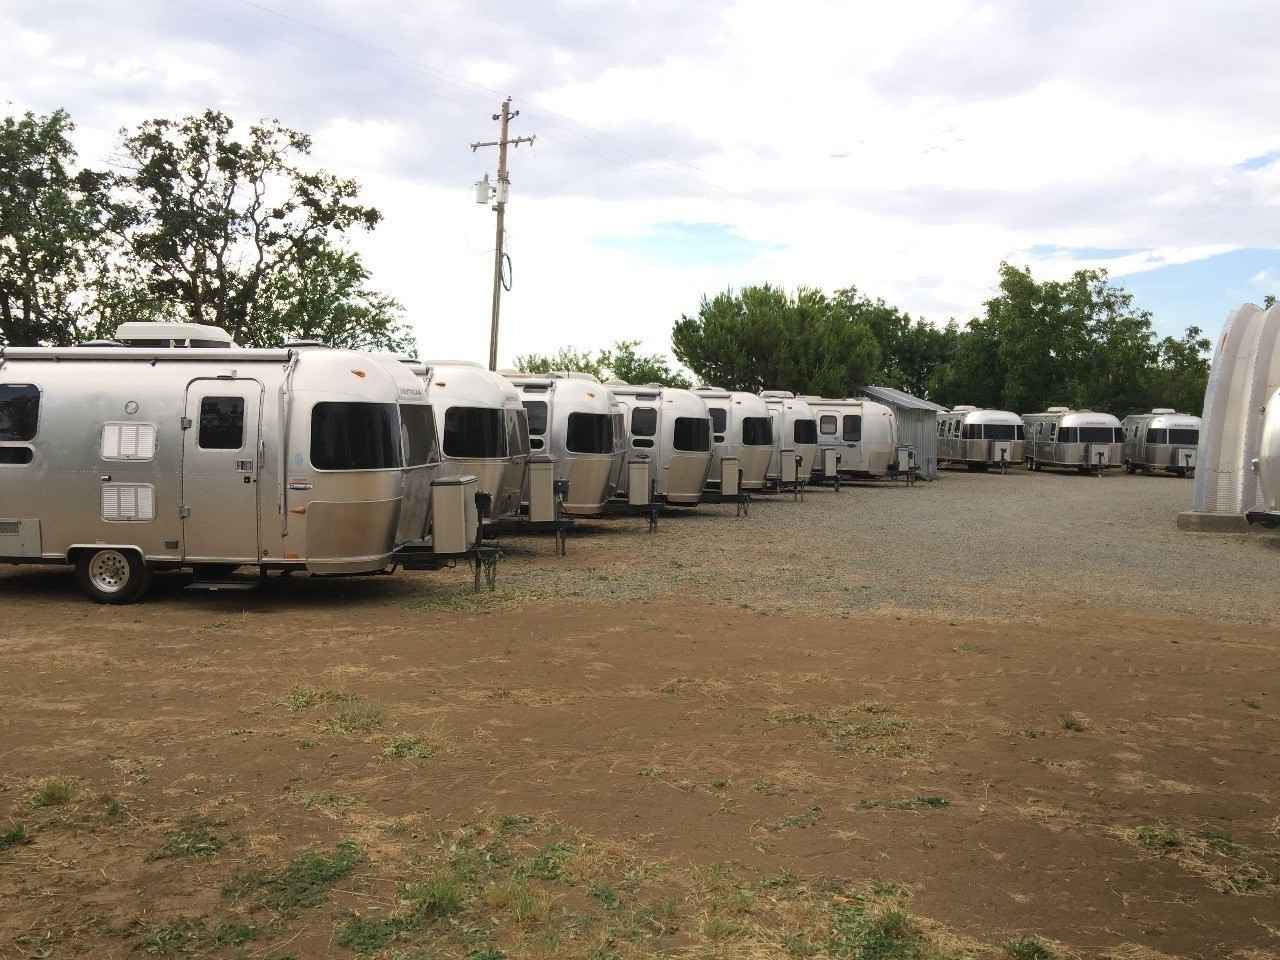 2010 used airstream late model pre owned airstreams for sale airstream travel trailer in. Black Bedroom Furniture Sets. Home Design Ideas